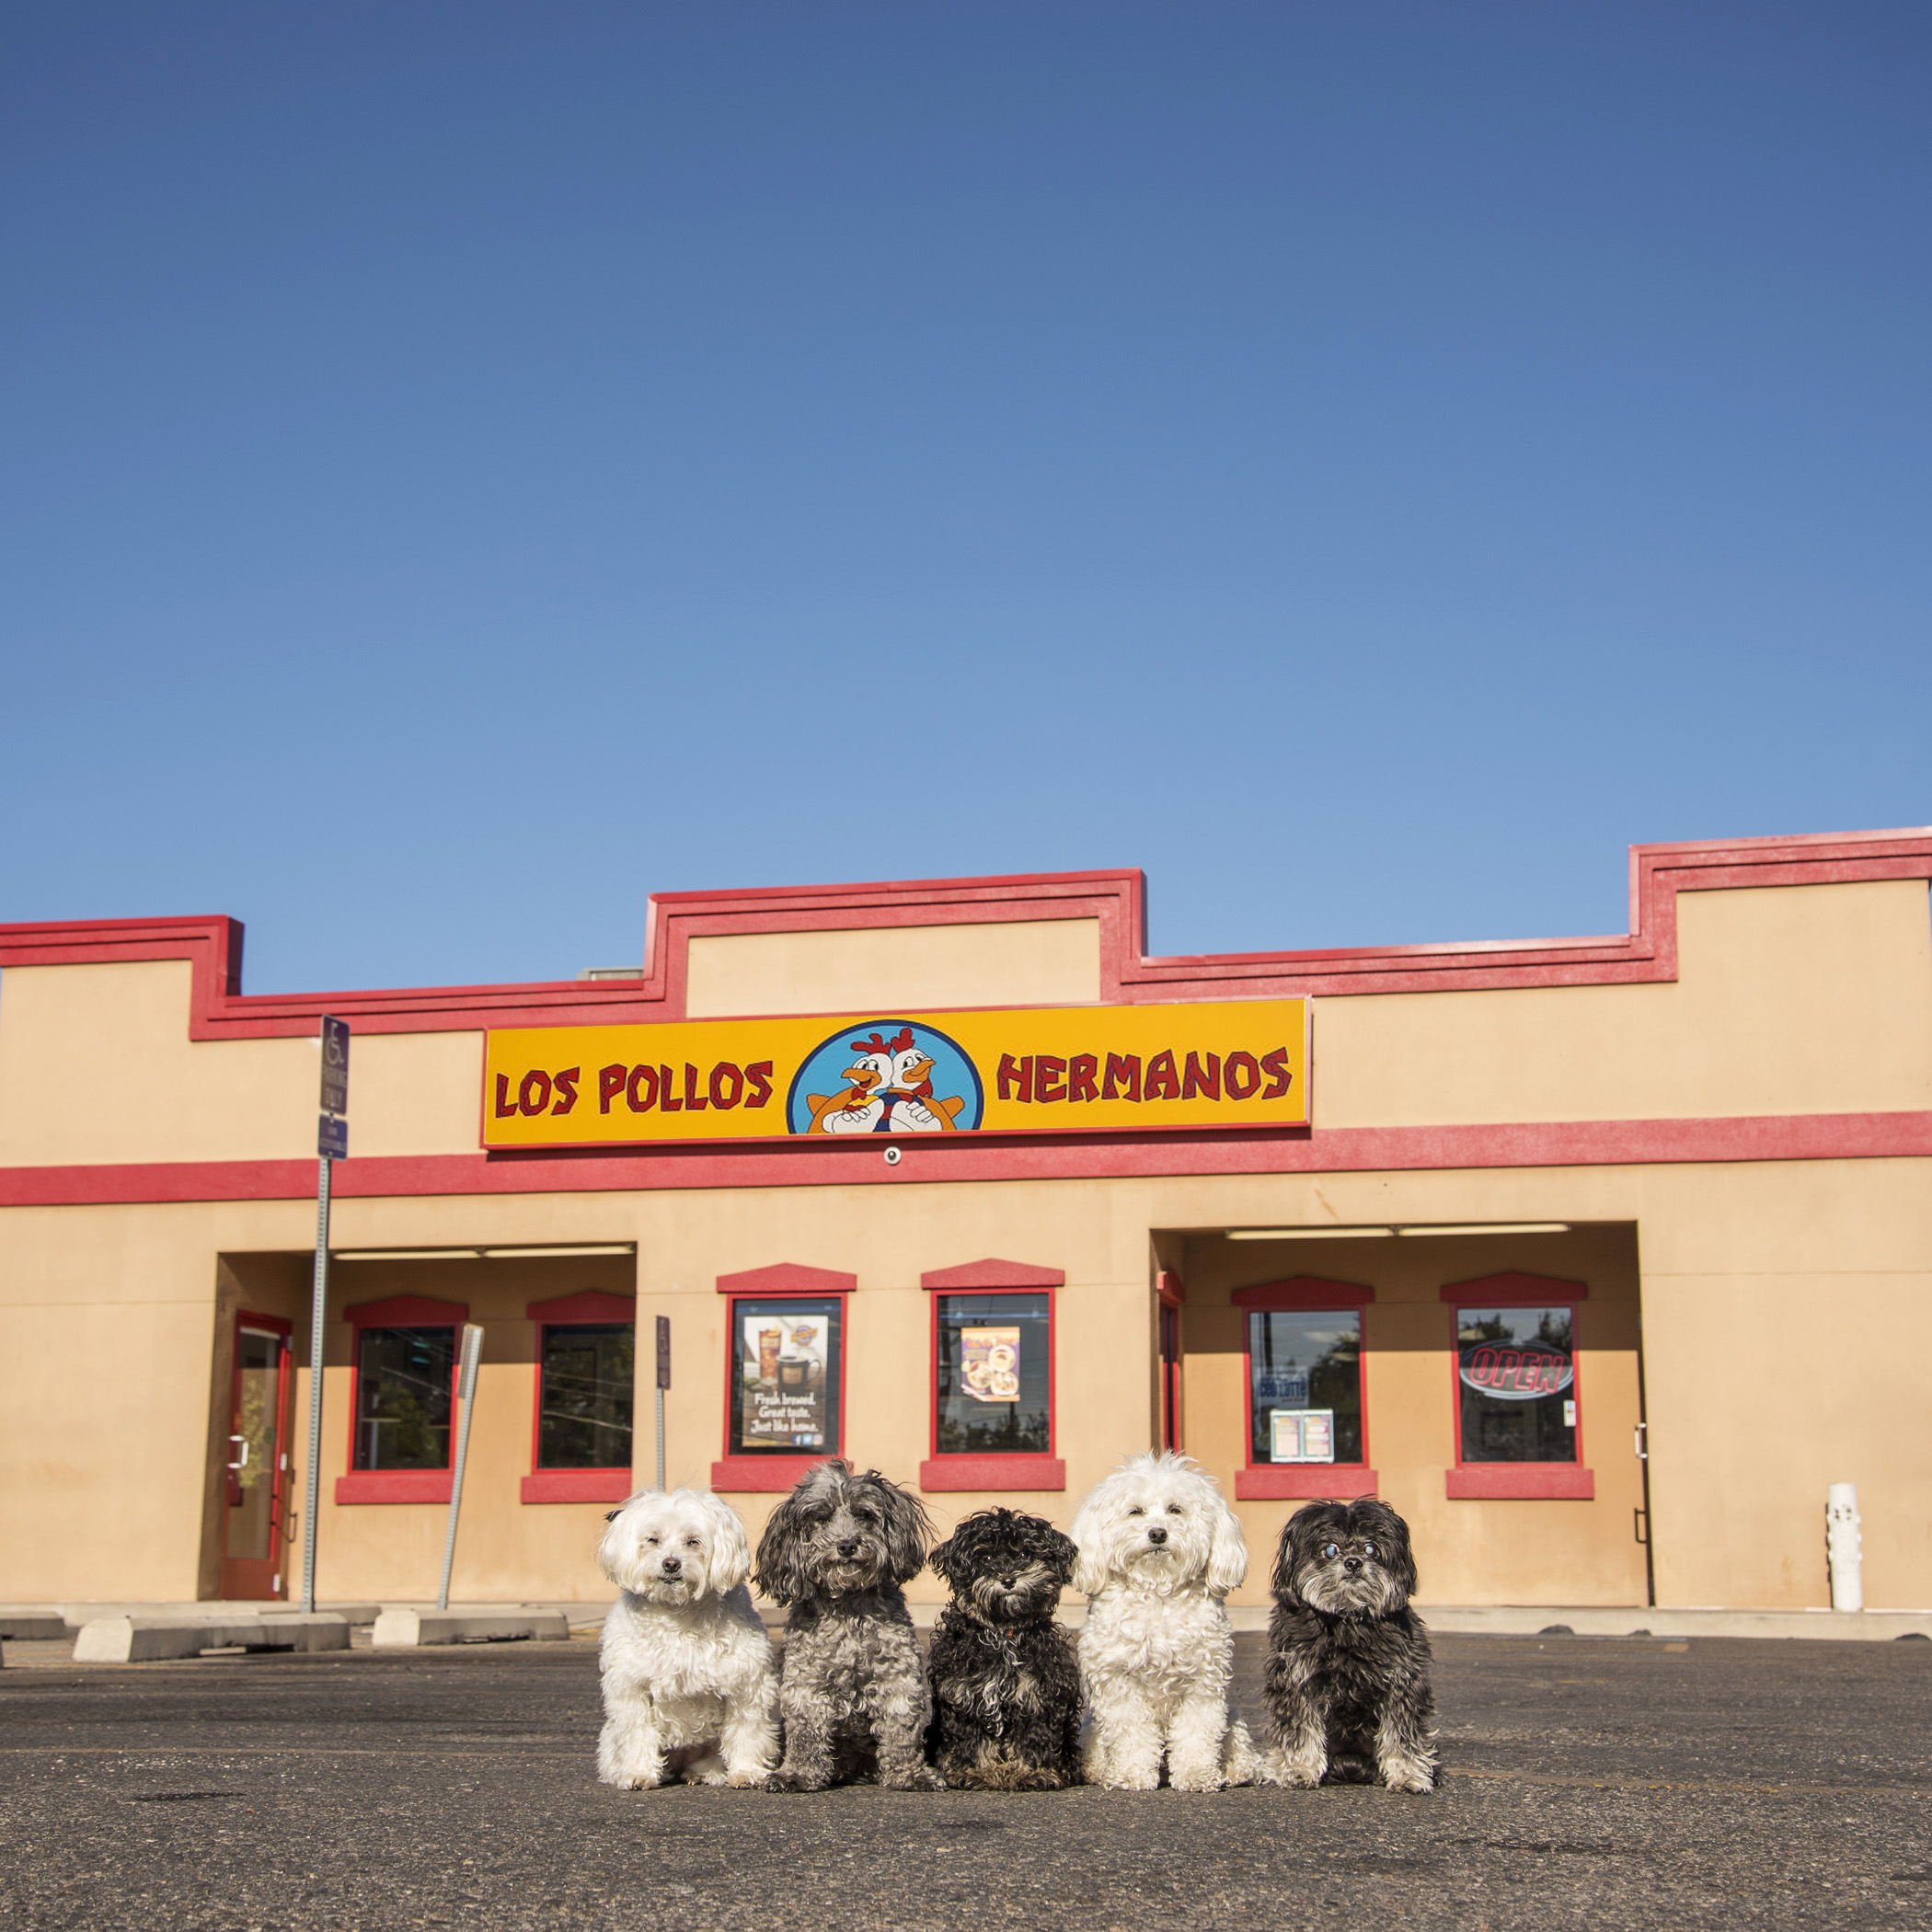 Los Pollos Hermanos. You should have seen Benji's nose going when he smelled the fried chicken!